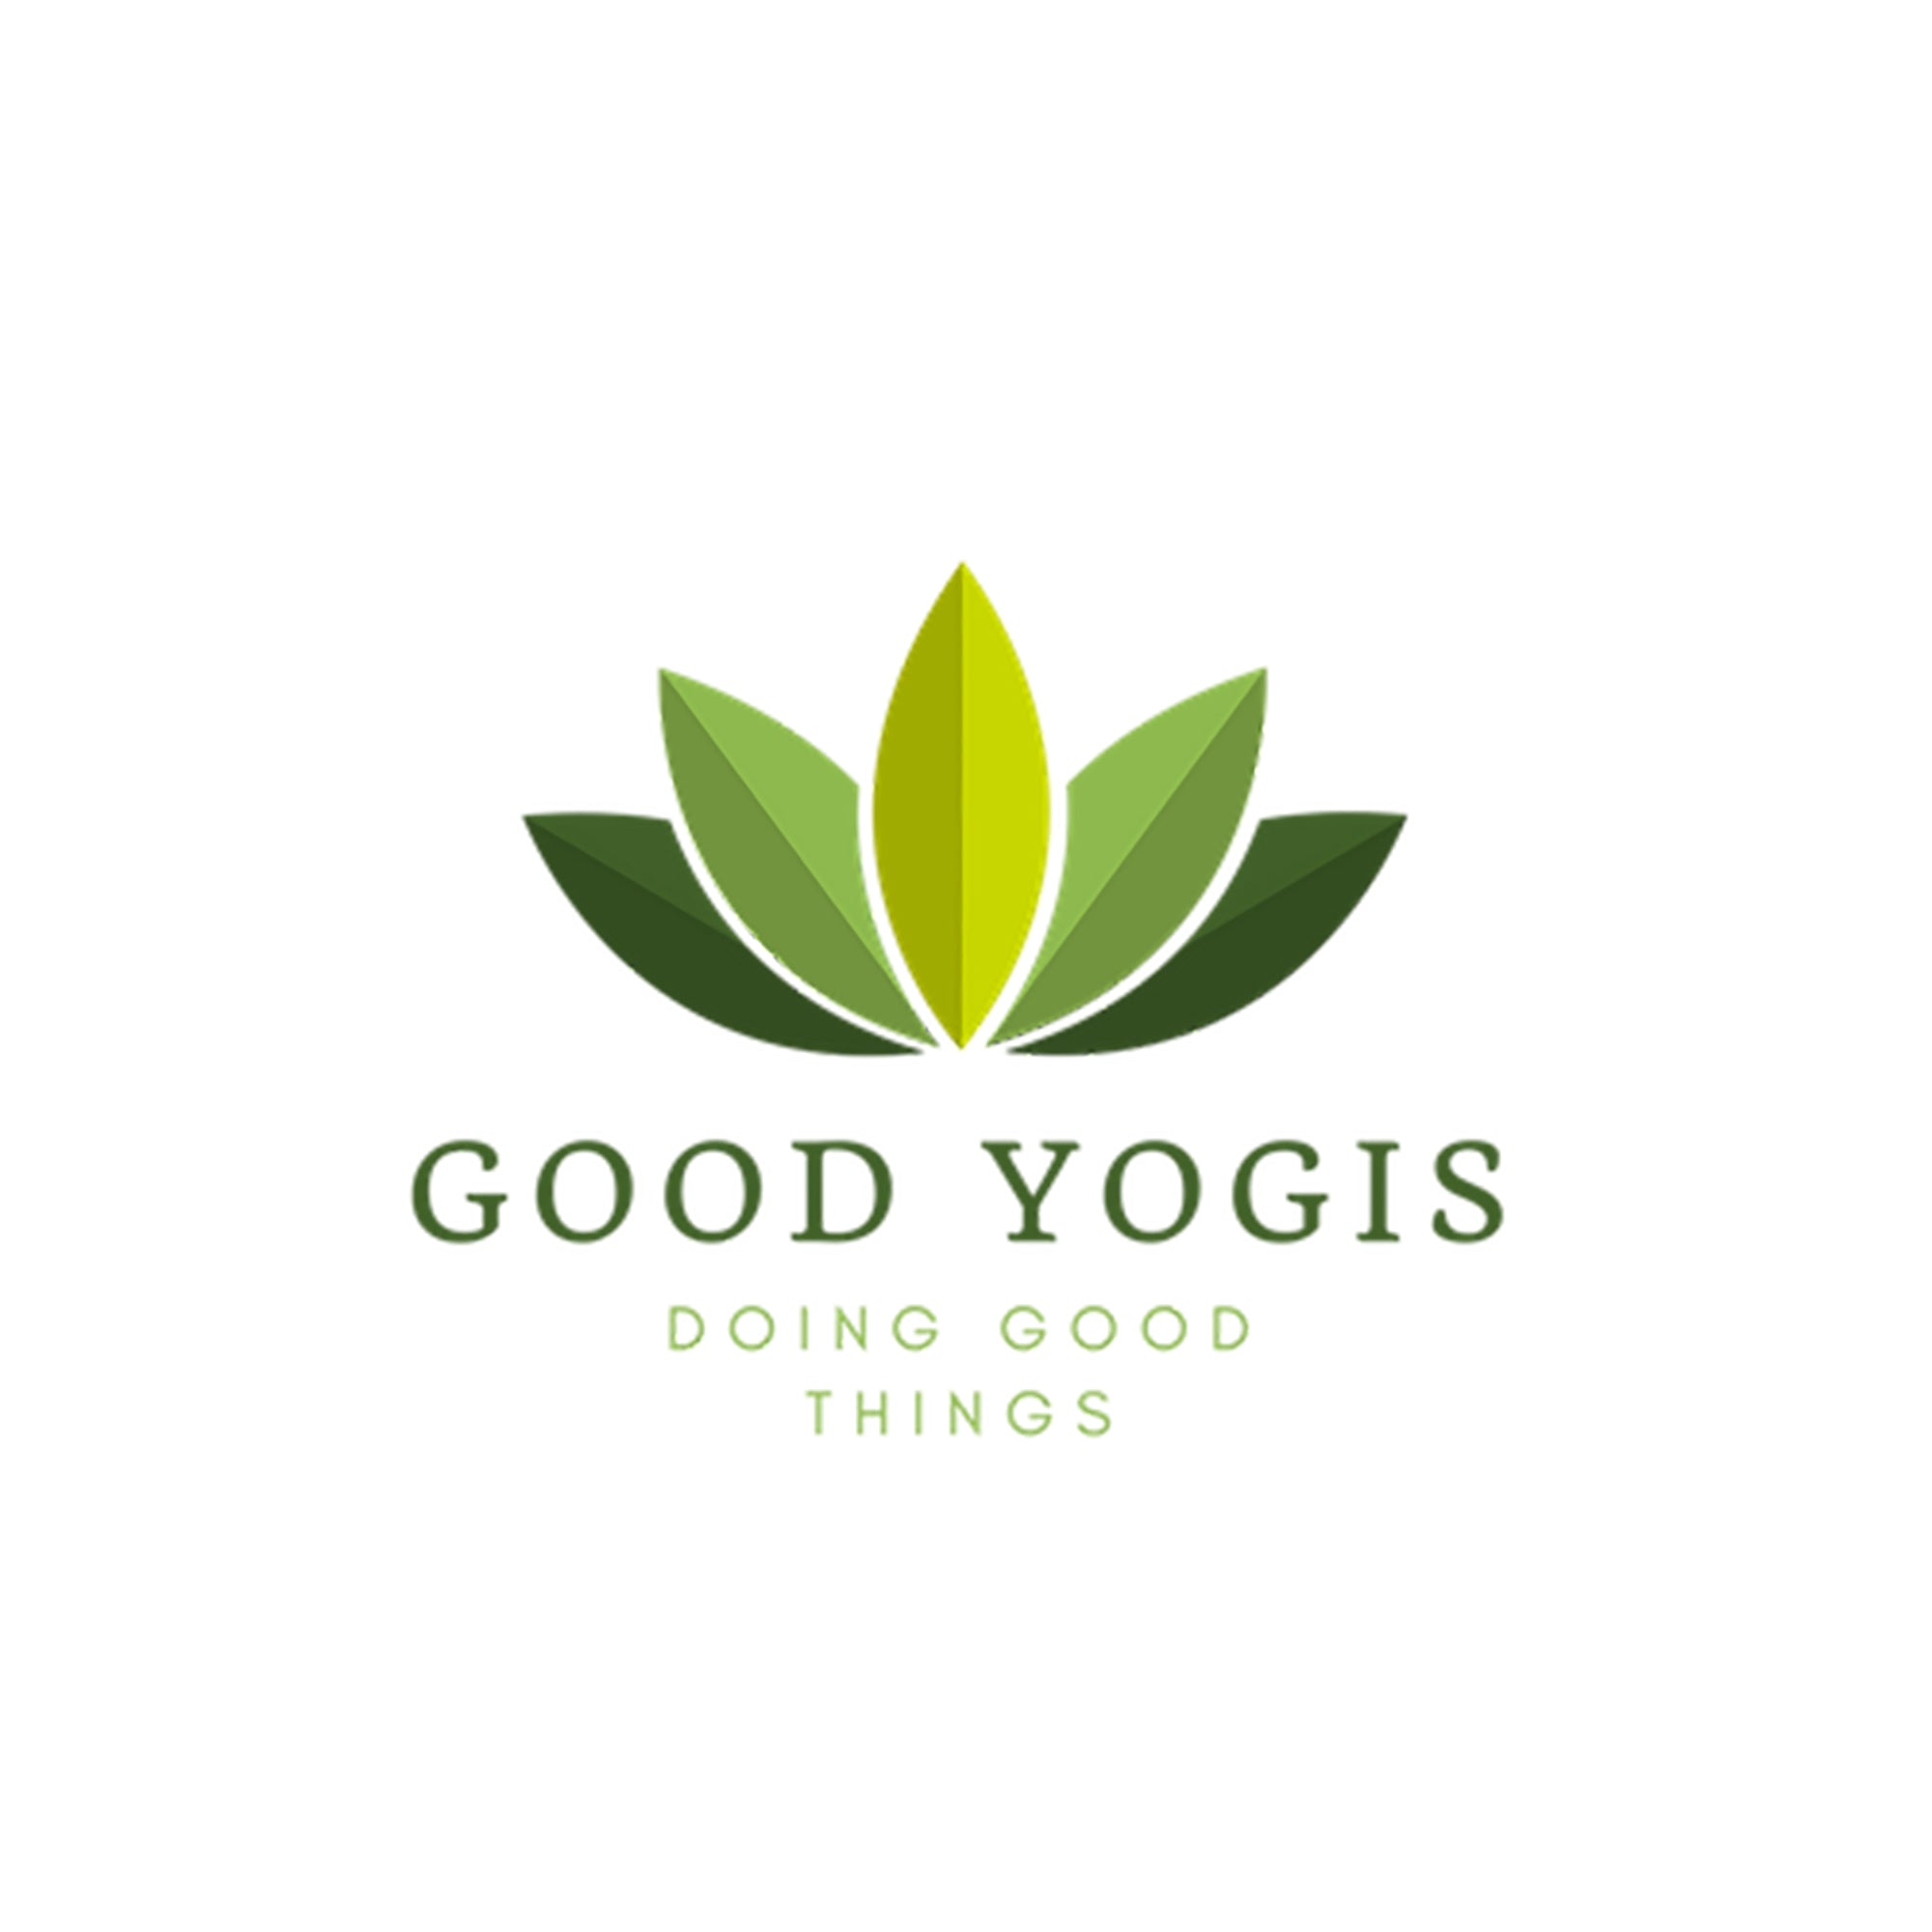 Good Yogis